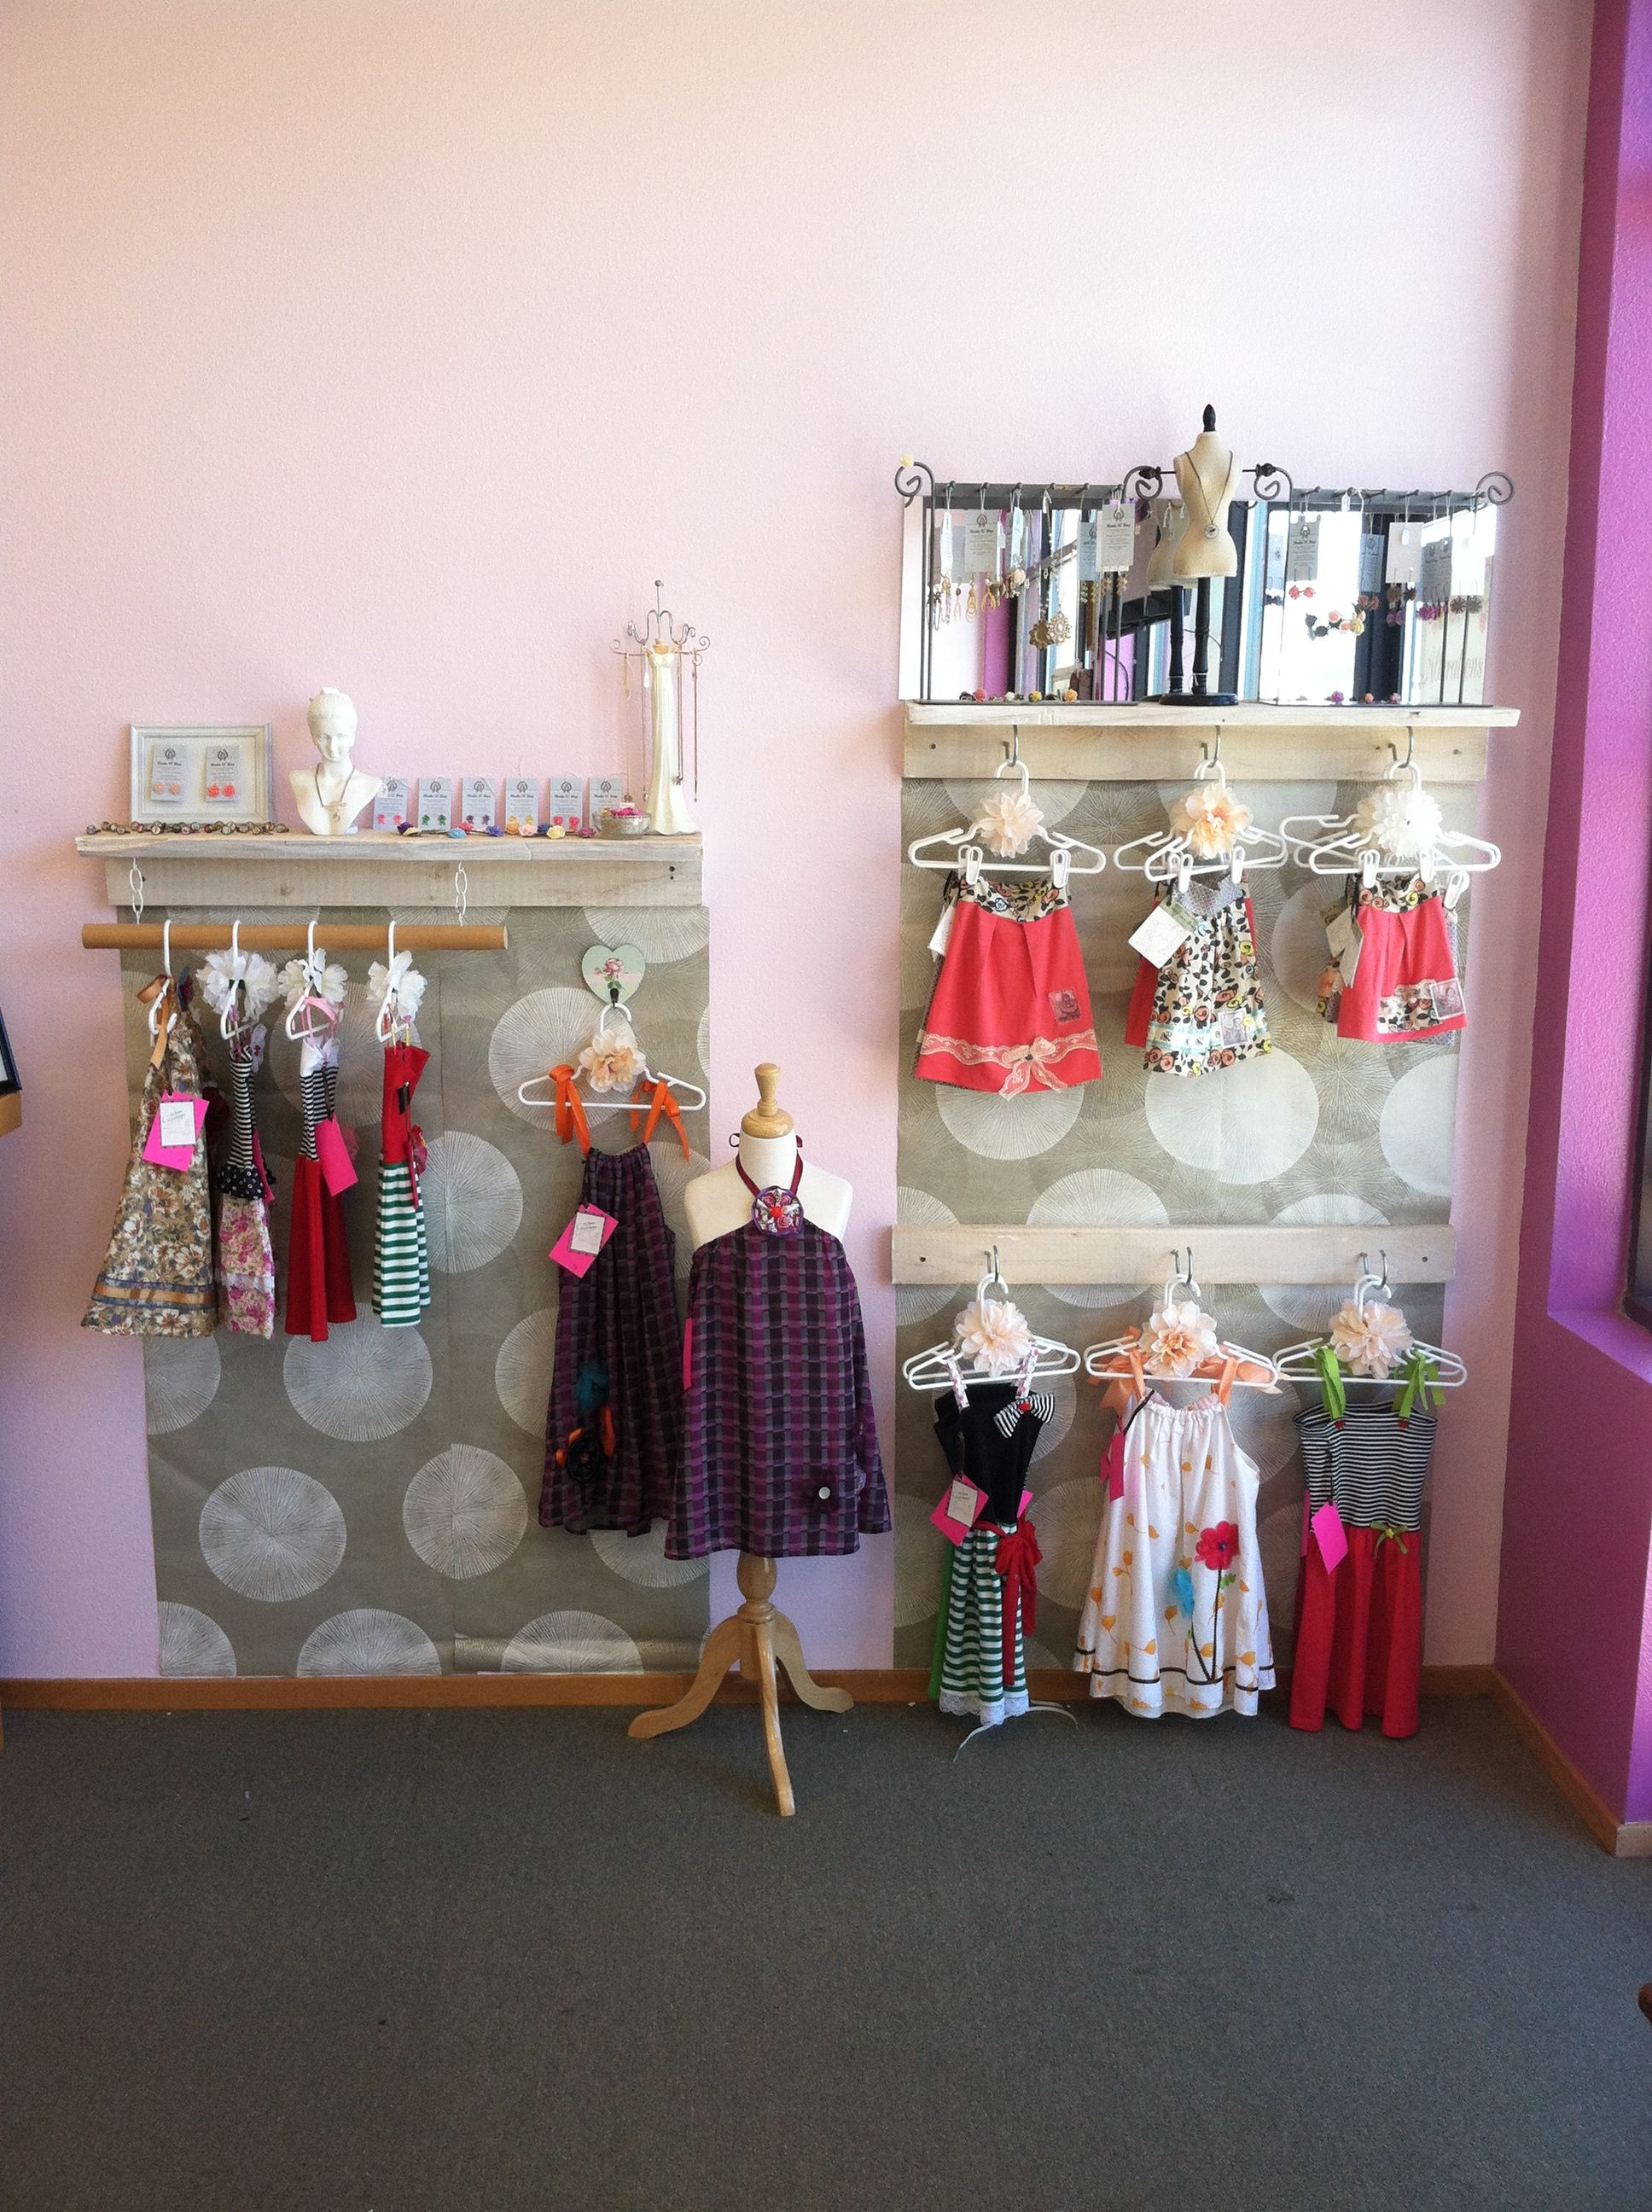 Cutie clothing store